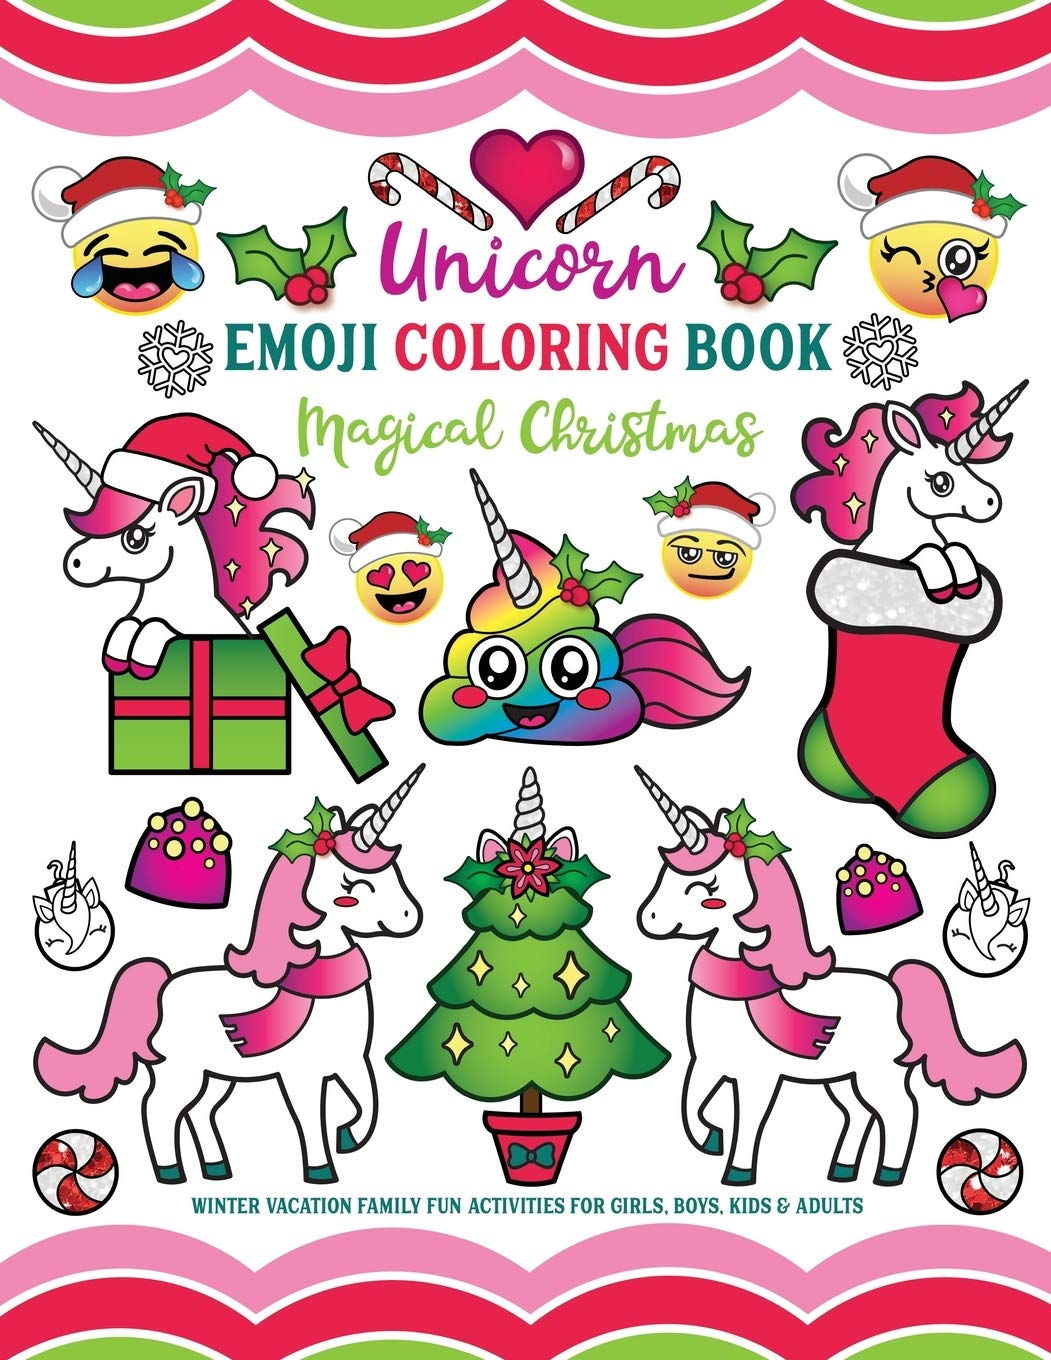 Amazon Com Unicorn Emoji Coloring Book Magical Christmas Winter Vacation Family Fun Activities For Girls Boys Kids Adults 9781643400105 Nyx Spectrum Books